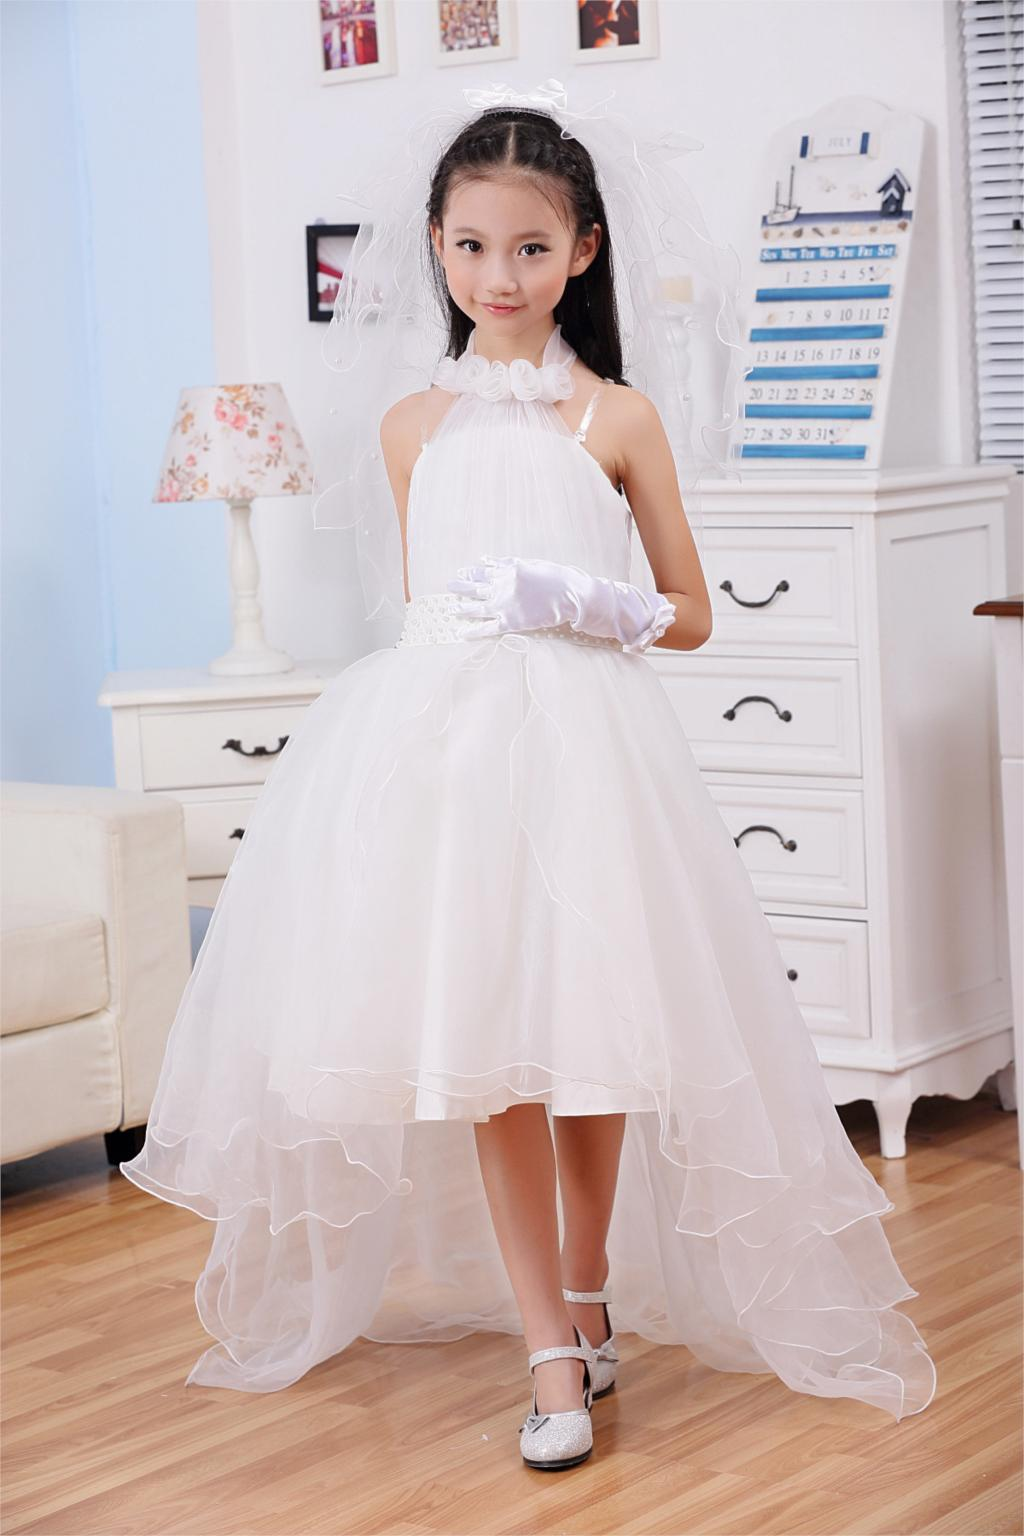 May 17,  · Re: Bridesmaid dresses for 12/13 year olds!! I bought my bridesmaids dresses from a shop that sell Dessy bridemaids dresses. Dessy itself do a range that have bridemaids dresses and junior bridemaid dresses.